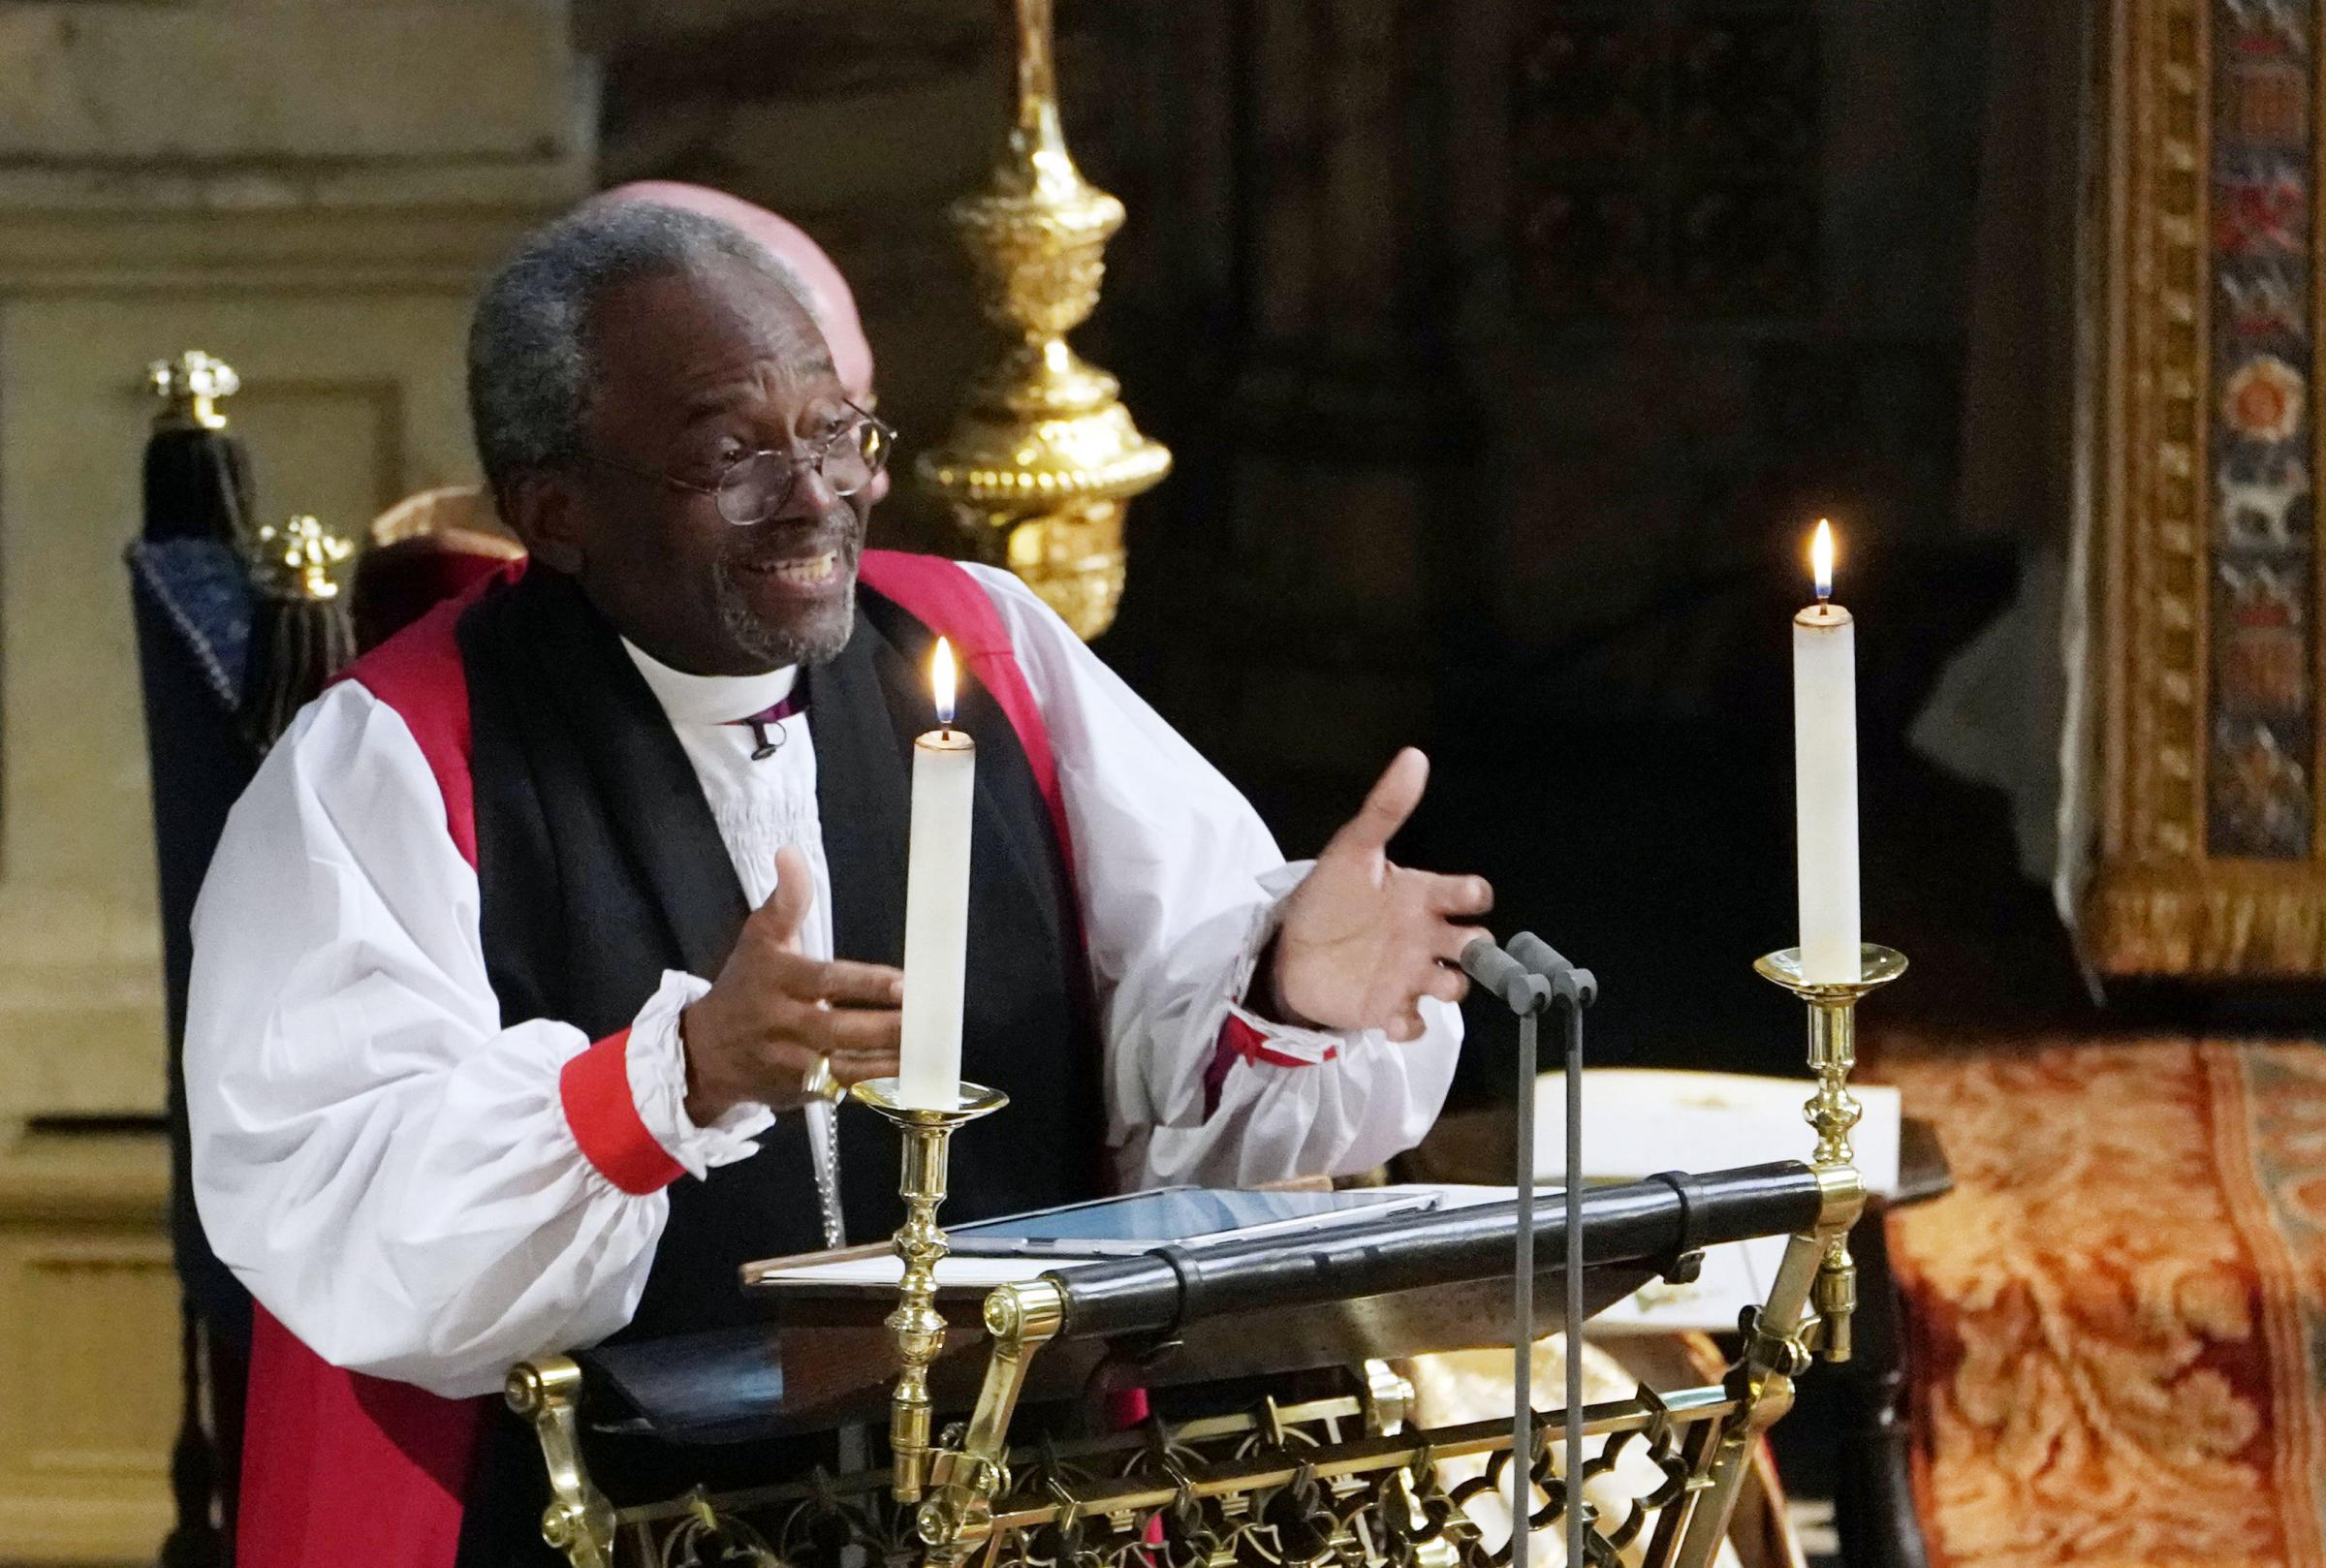 Bishop Michael Curry gave an impassioned sermon during the royal wedding